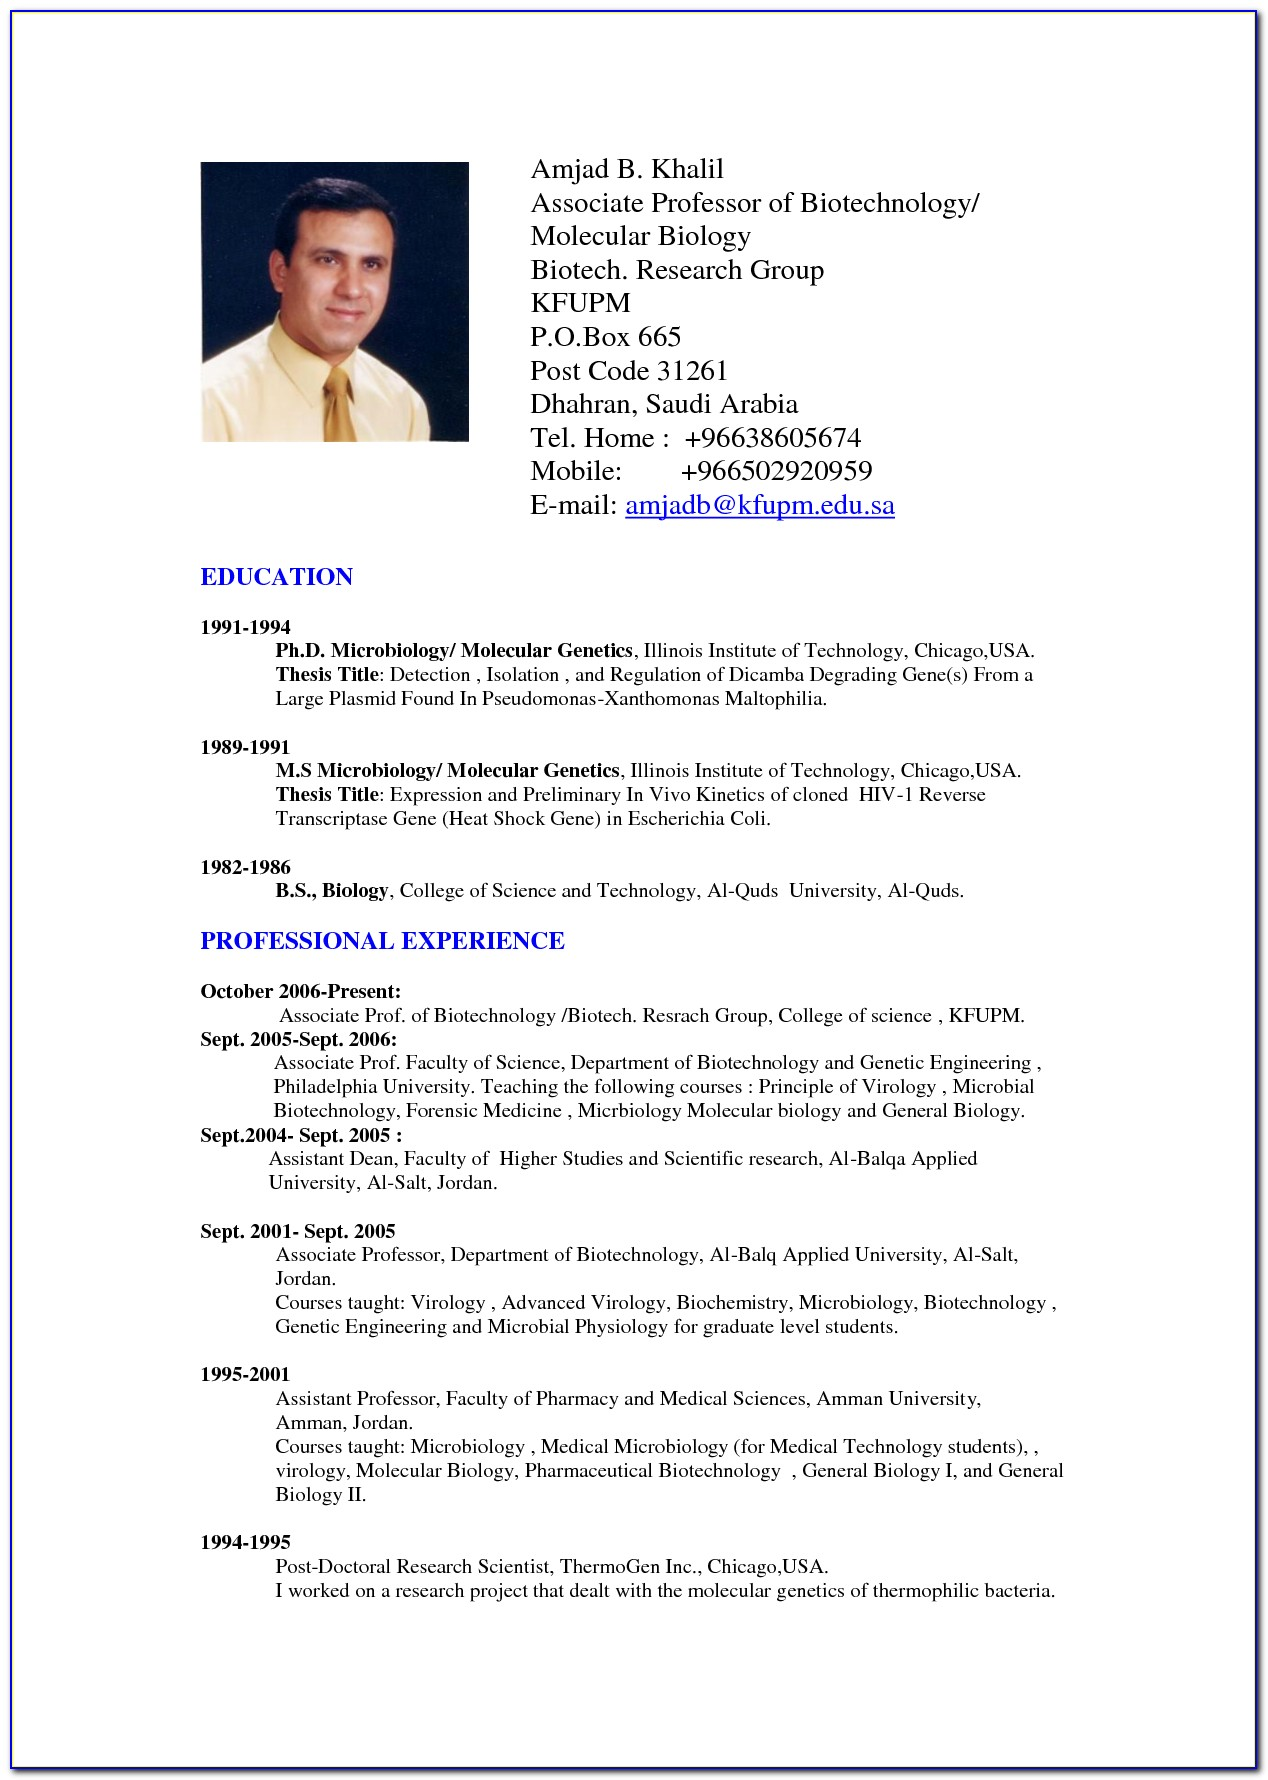 Resume Samples Doc Format Download